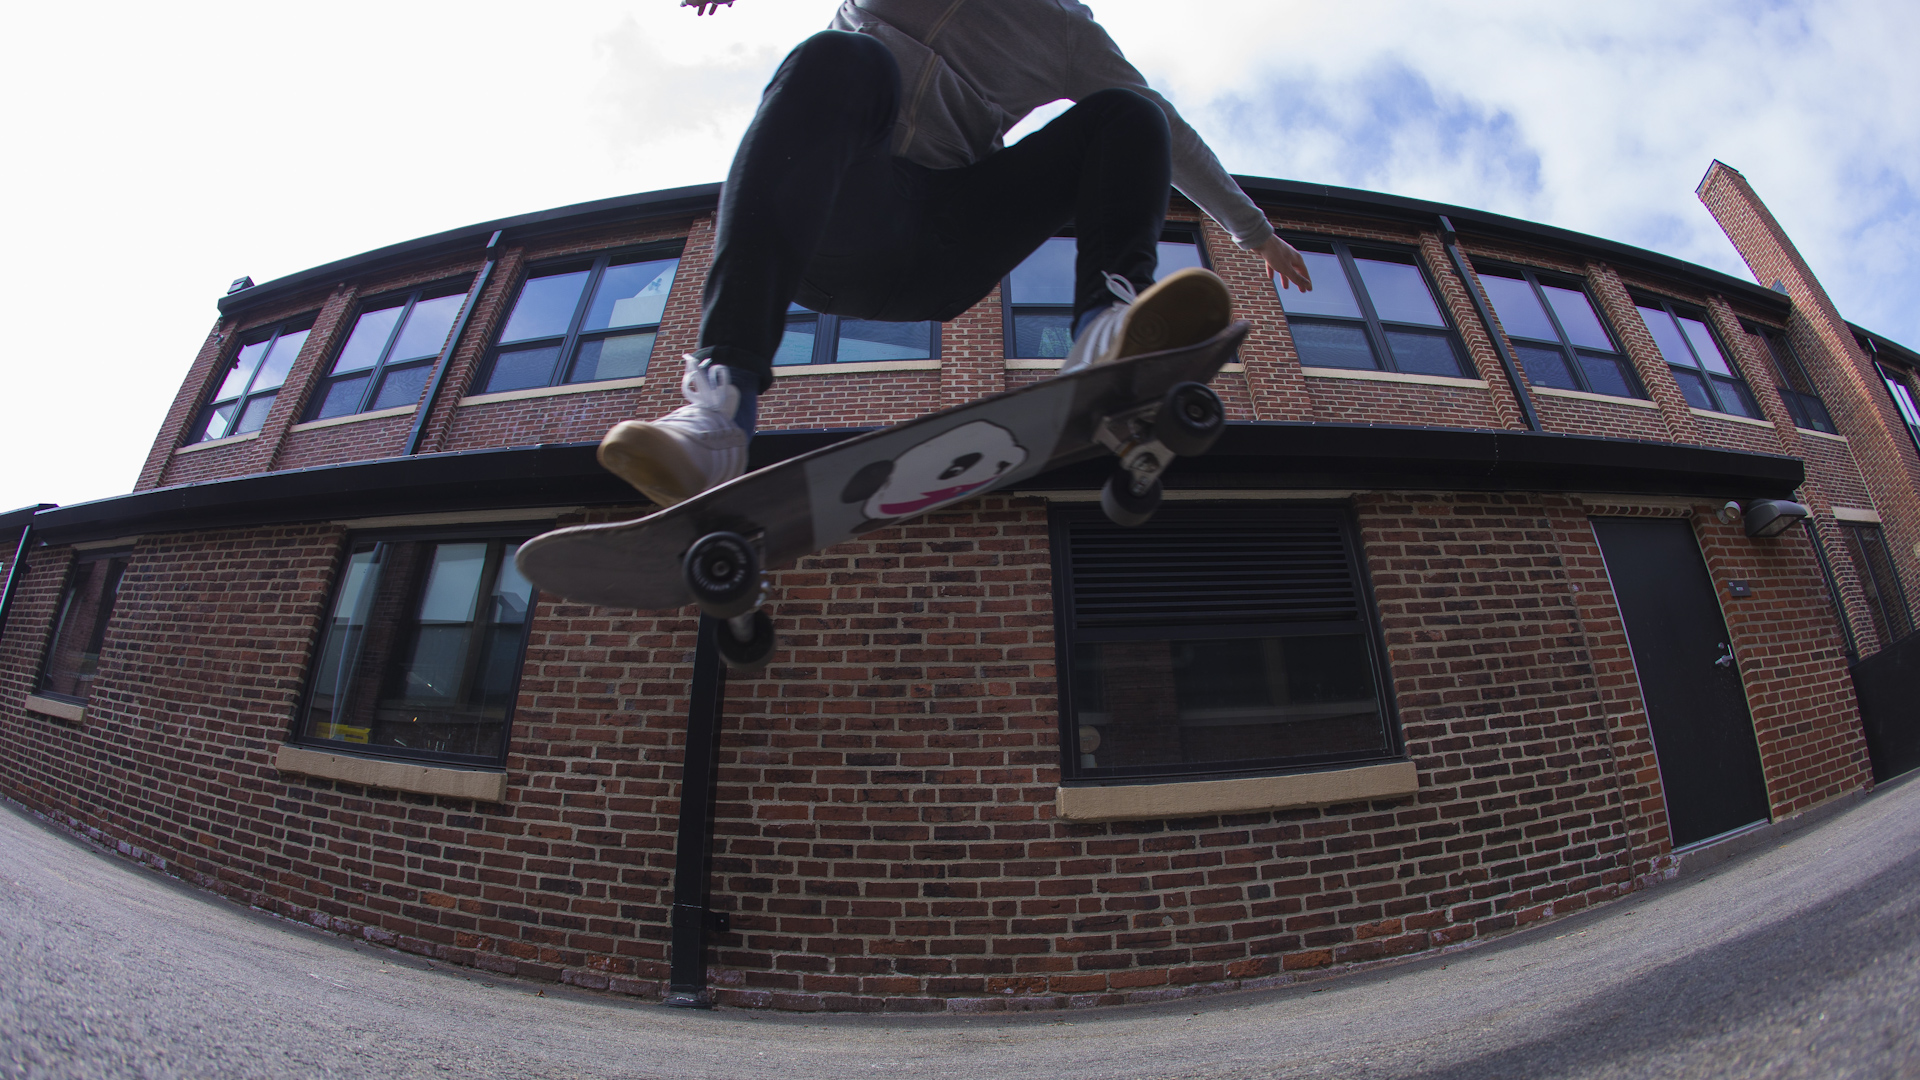 5 Shooting and Editing Tips from Skateboarding Videos — Wistia